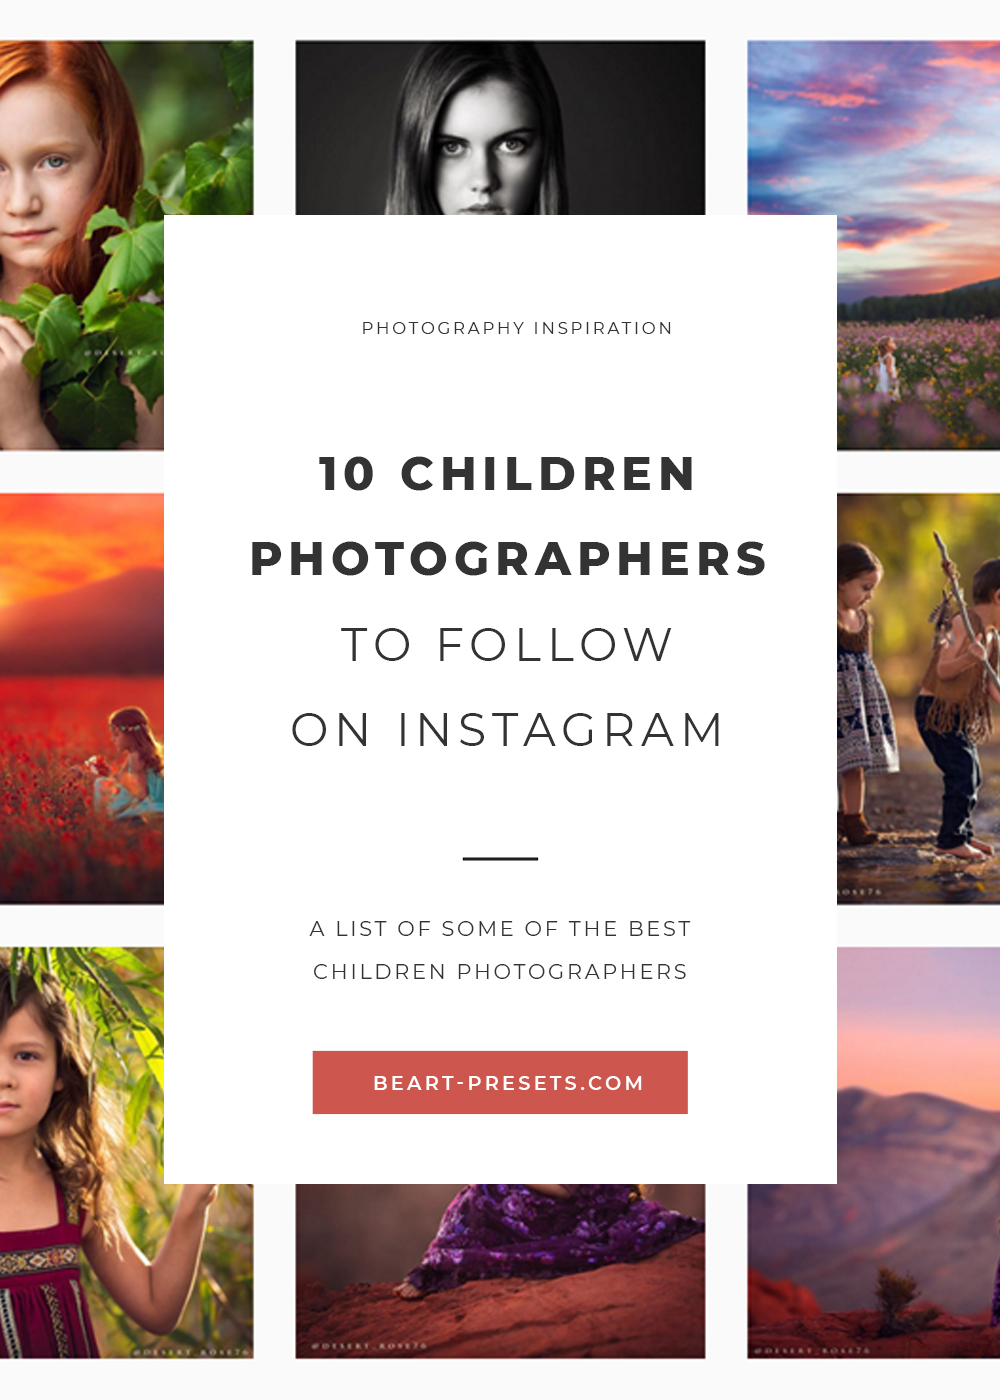 10-INSPIRING-CHILDREN-PHOTOGRAPHERS-TO-FOLLOW-ON-NSTAGRAM